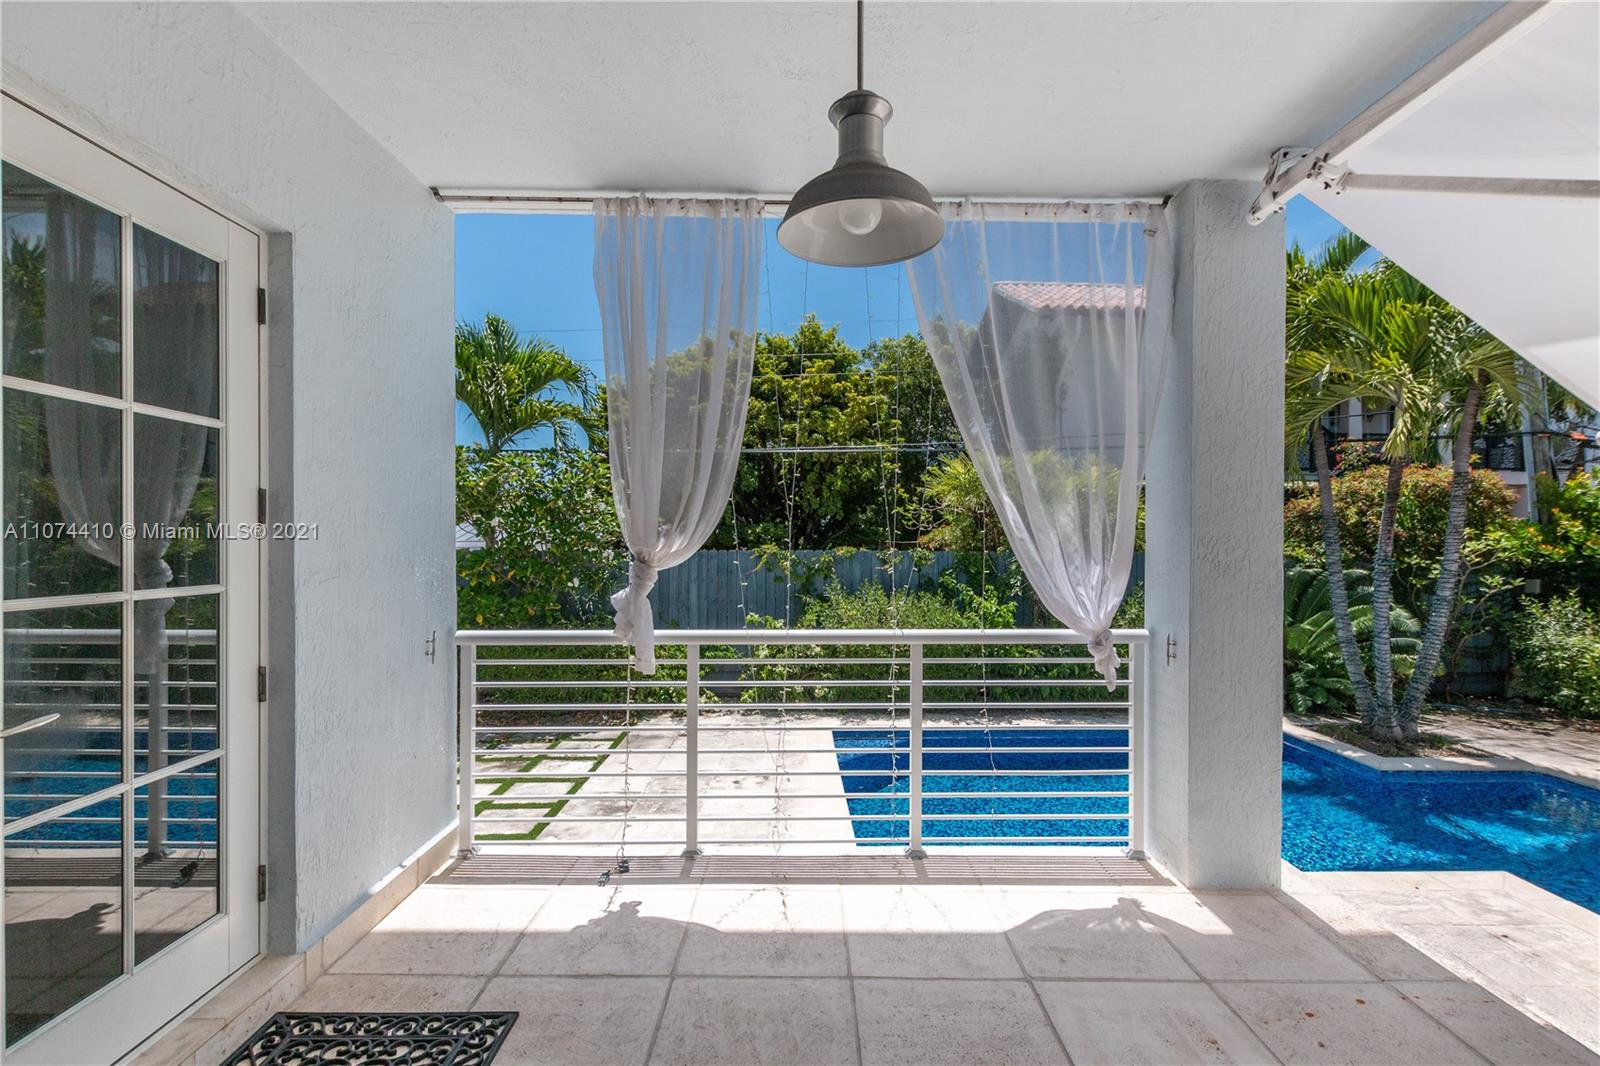 Absolute charming elevated house in very quiet Street. 5/4 +DEN + Office . 3.500 Sq Ft plus 2 cars attached garage with A/C. High ceilings, full of light, great gourmet kitchen with den, walking closets in all bedrooms,. Fabulous outdoor space with pool.